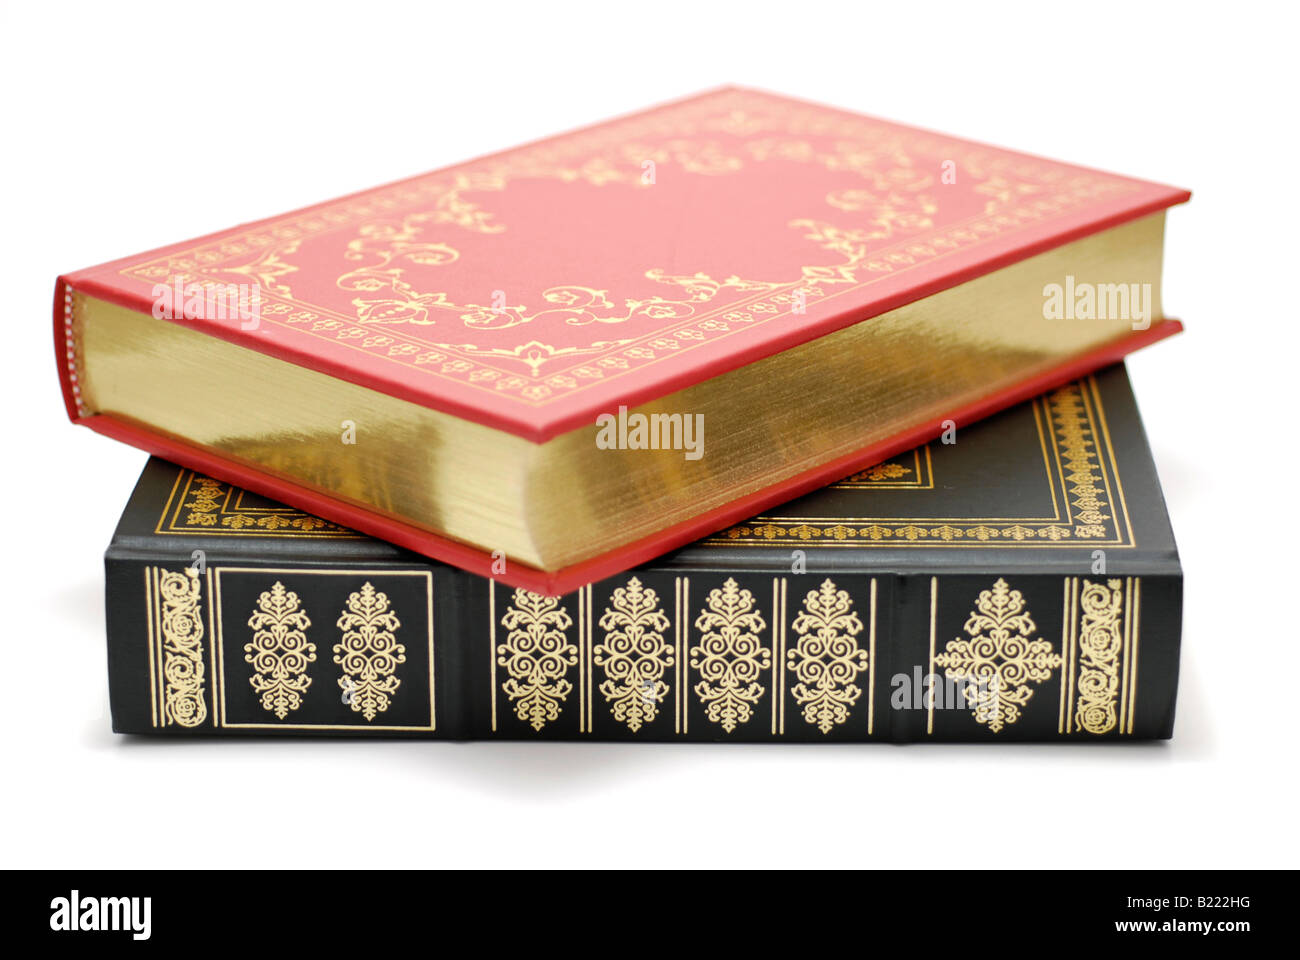 Leather Bound Books with no Titles - Stock Image